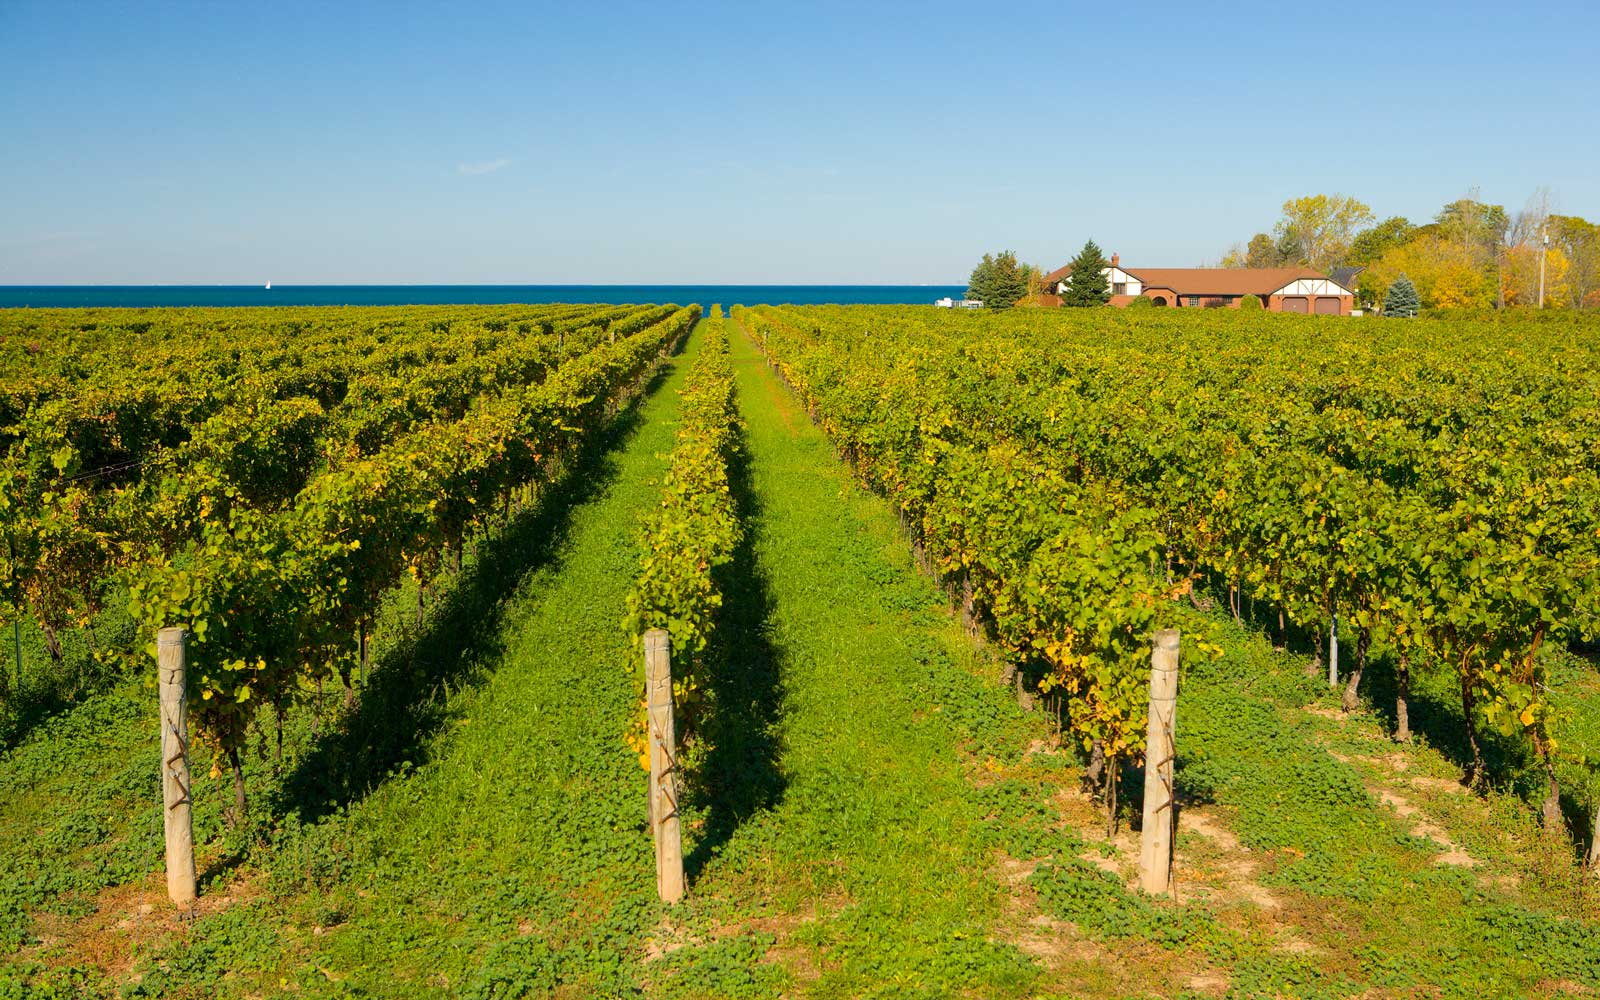 Winery Vineyard, Niagara-on-the-Lake, Ontario